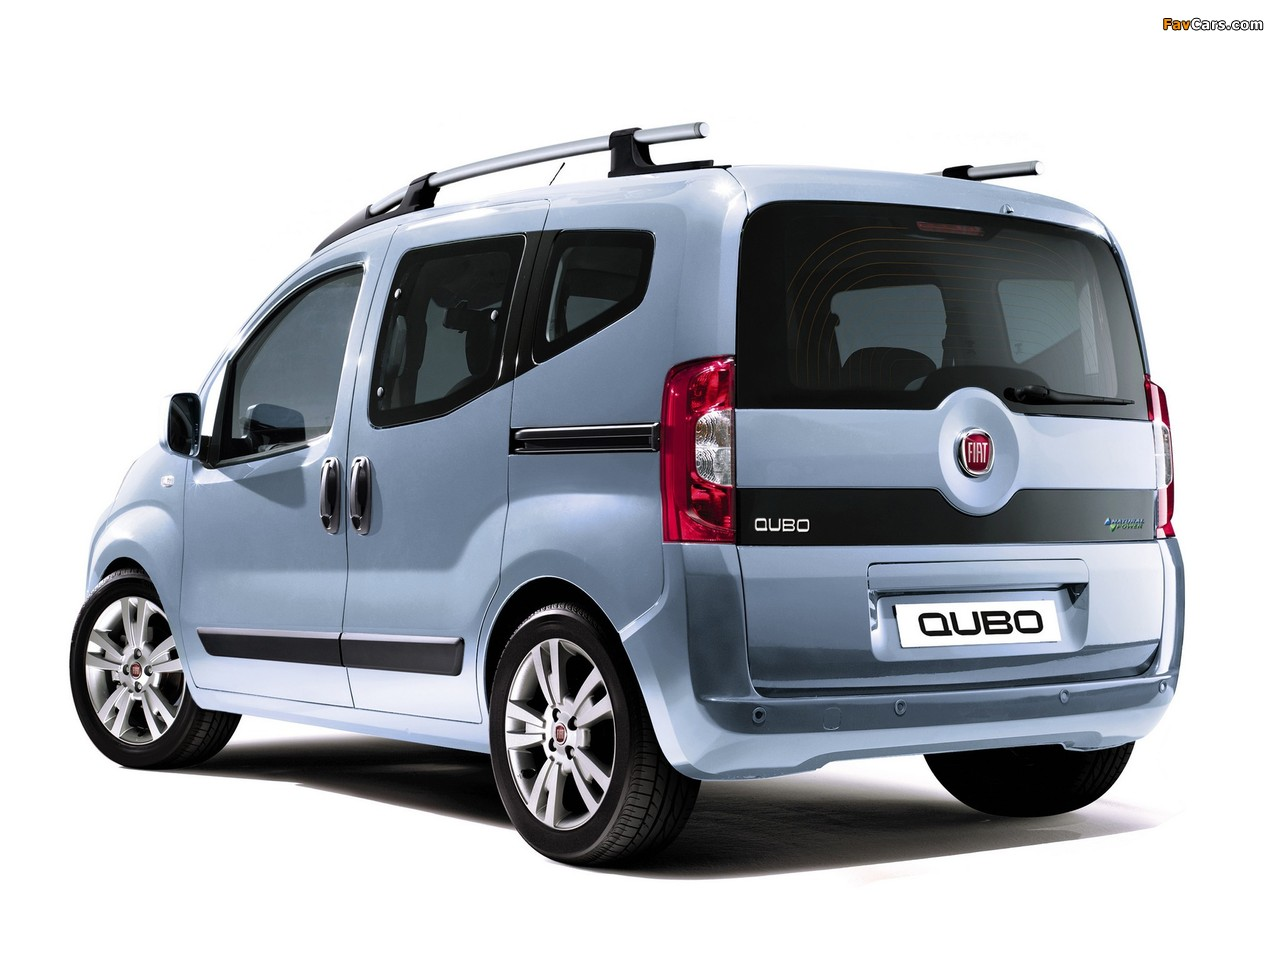 Fiat Qubo Natural Power (225) 2009 wallpapers (1280 x 960)